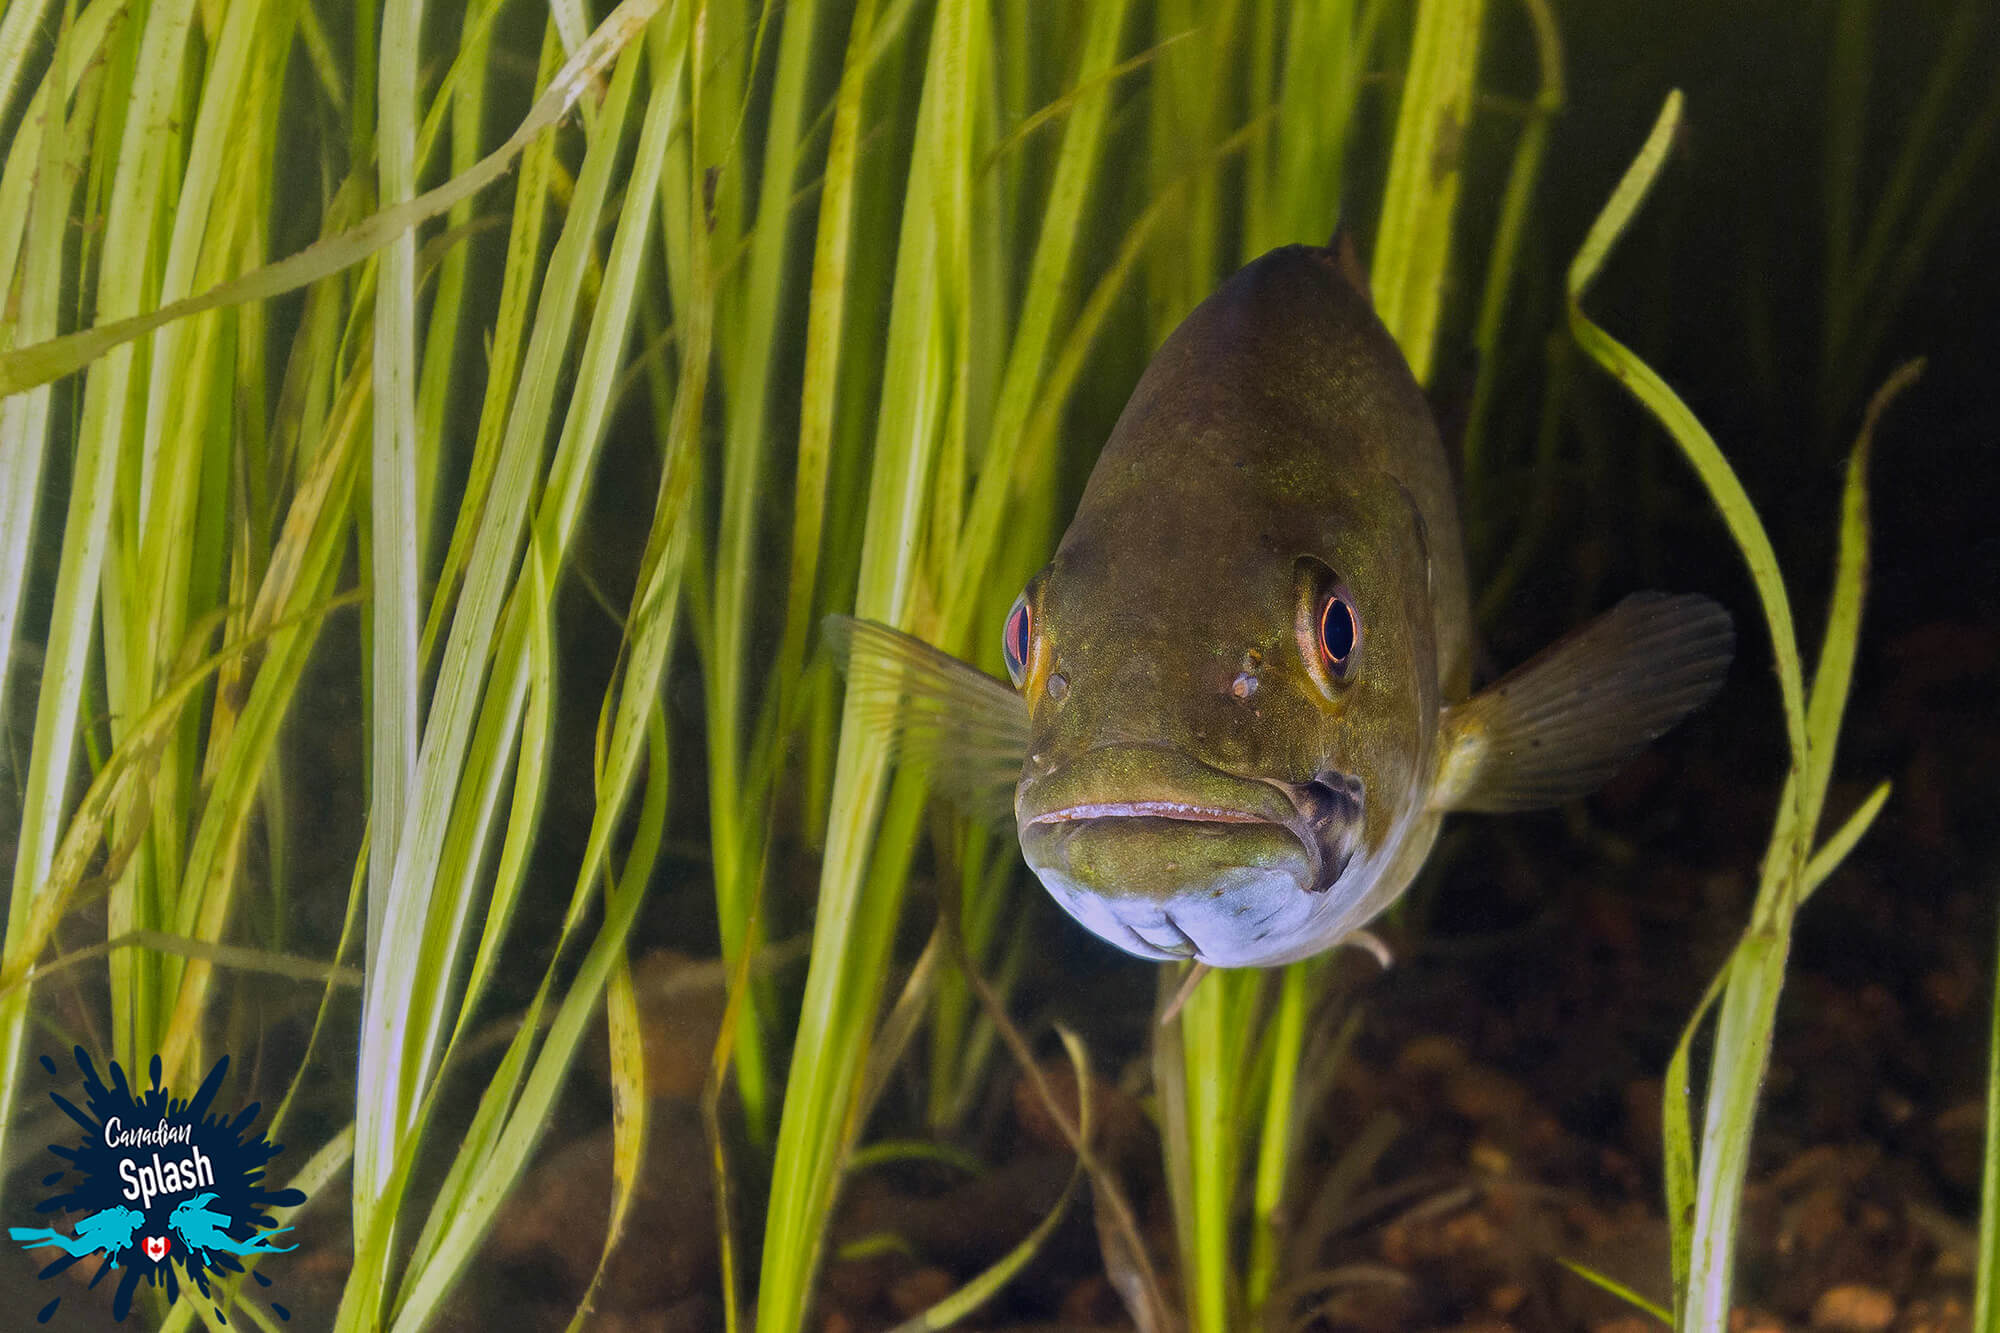 Small Mouth Bass Underwater In The Green Sea Grass Of Samuel De Champlain Provincial Park, Ontario, Scuba Diving Canada